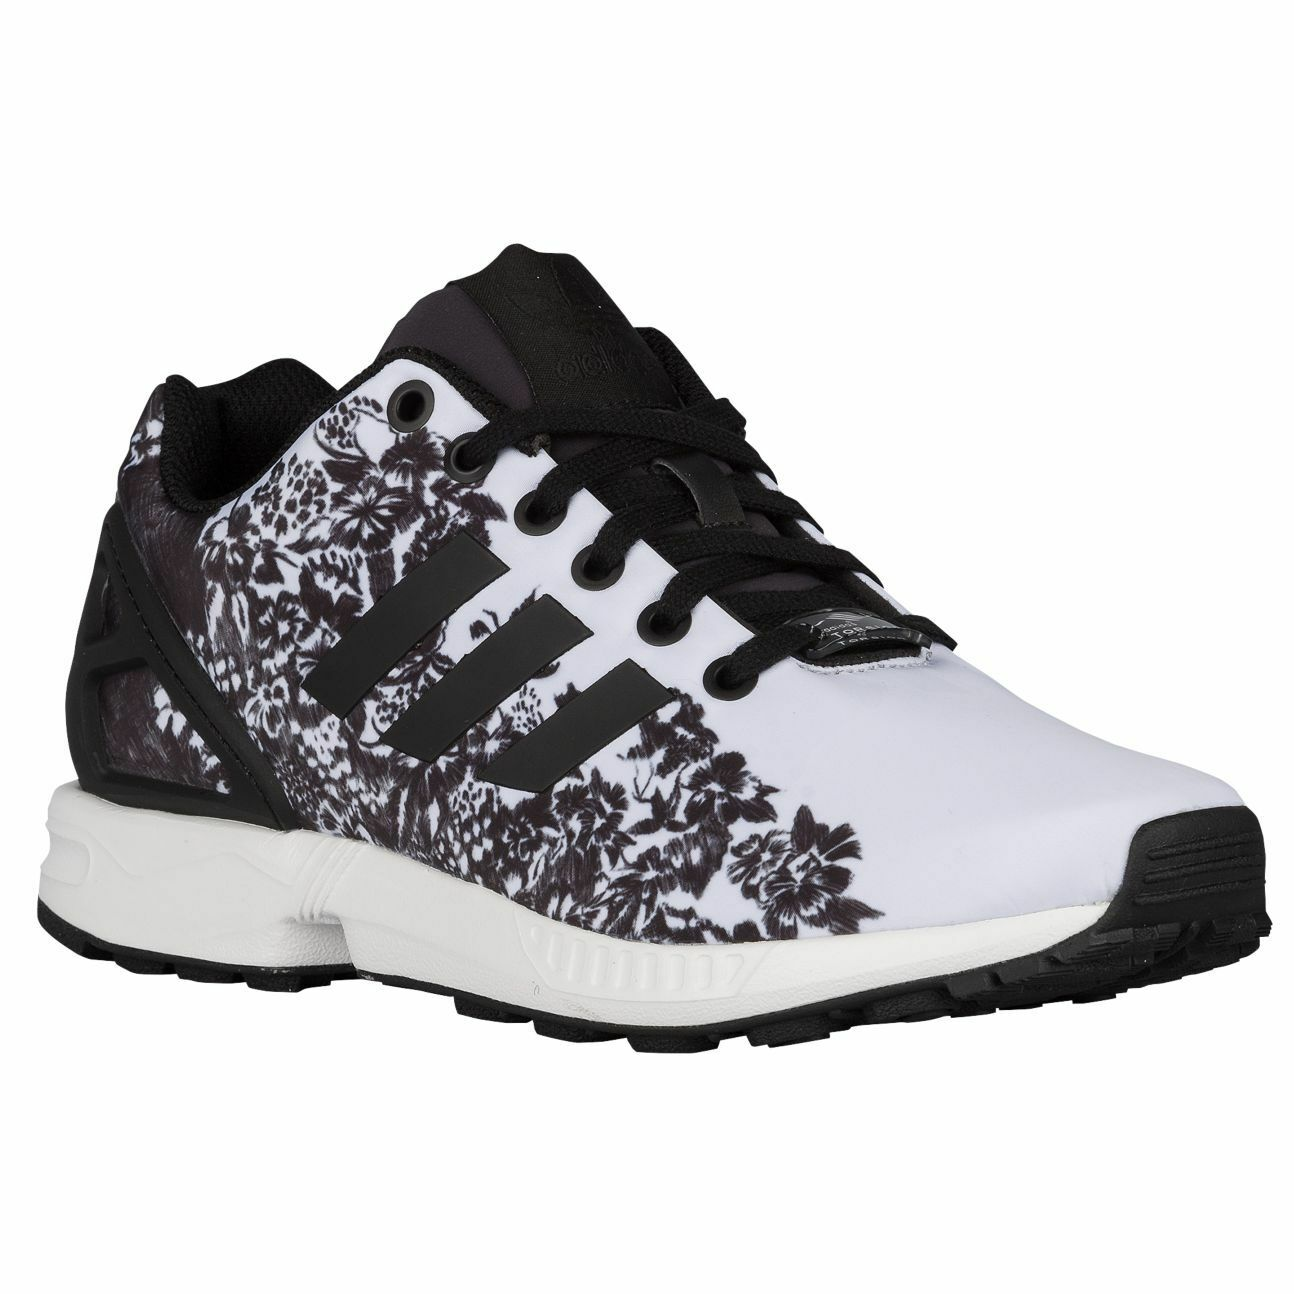 best authentic 280e8 b4cb5 36342 e771a  authentic new femmes adidas originals flux chaussures size 6.5  color chaussures blanc noir e6fddf 9232e b1112